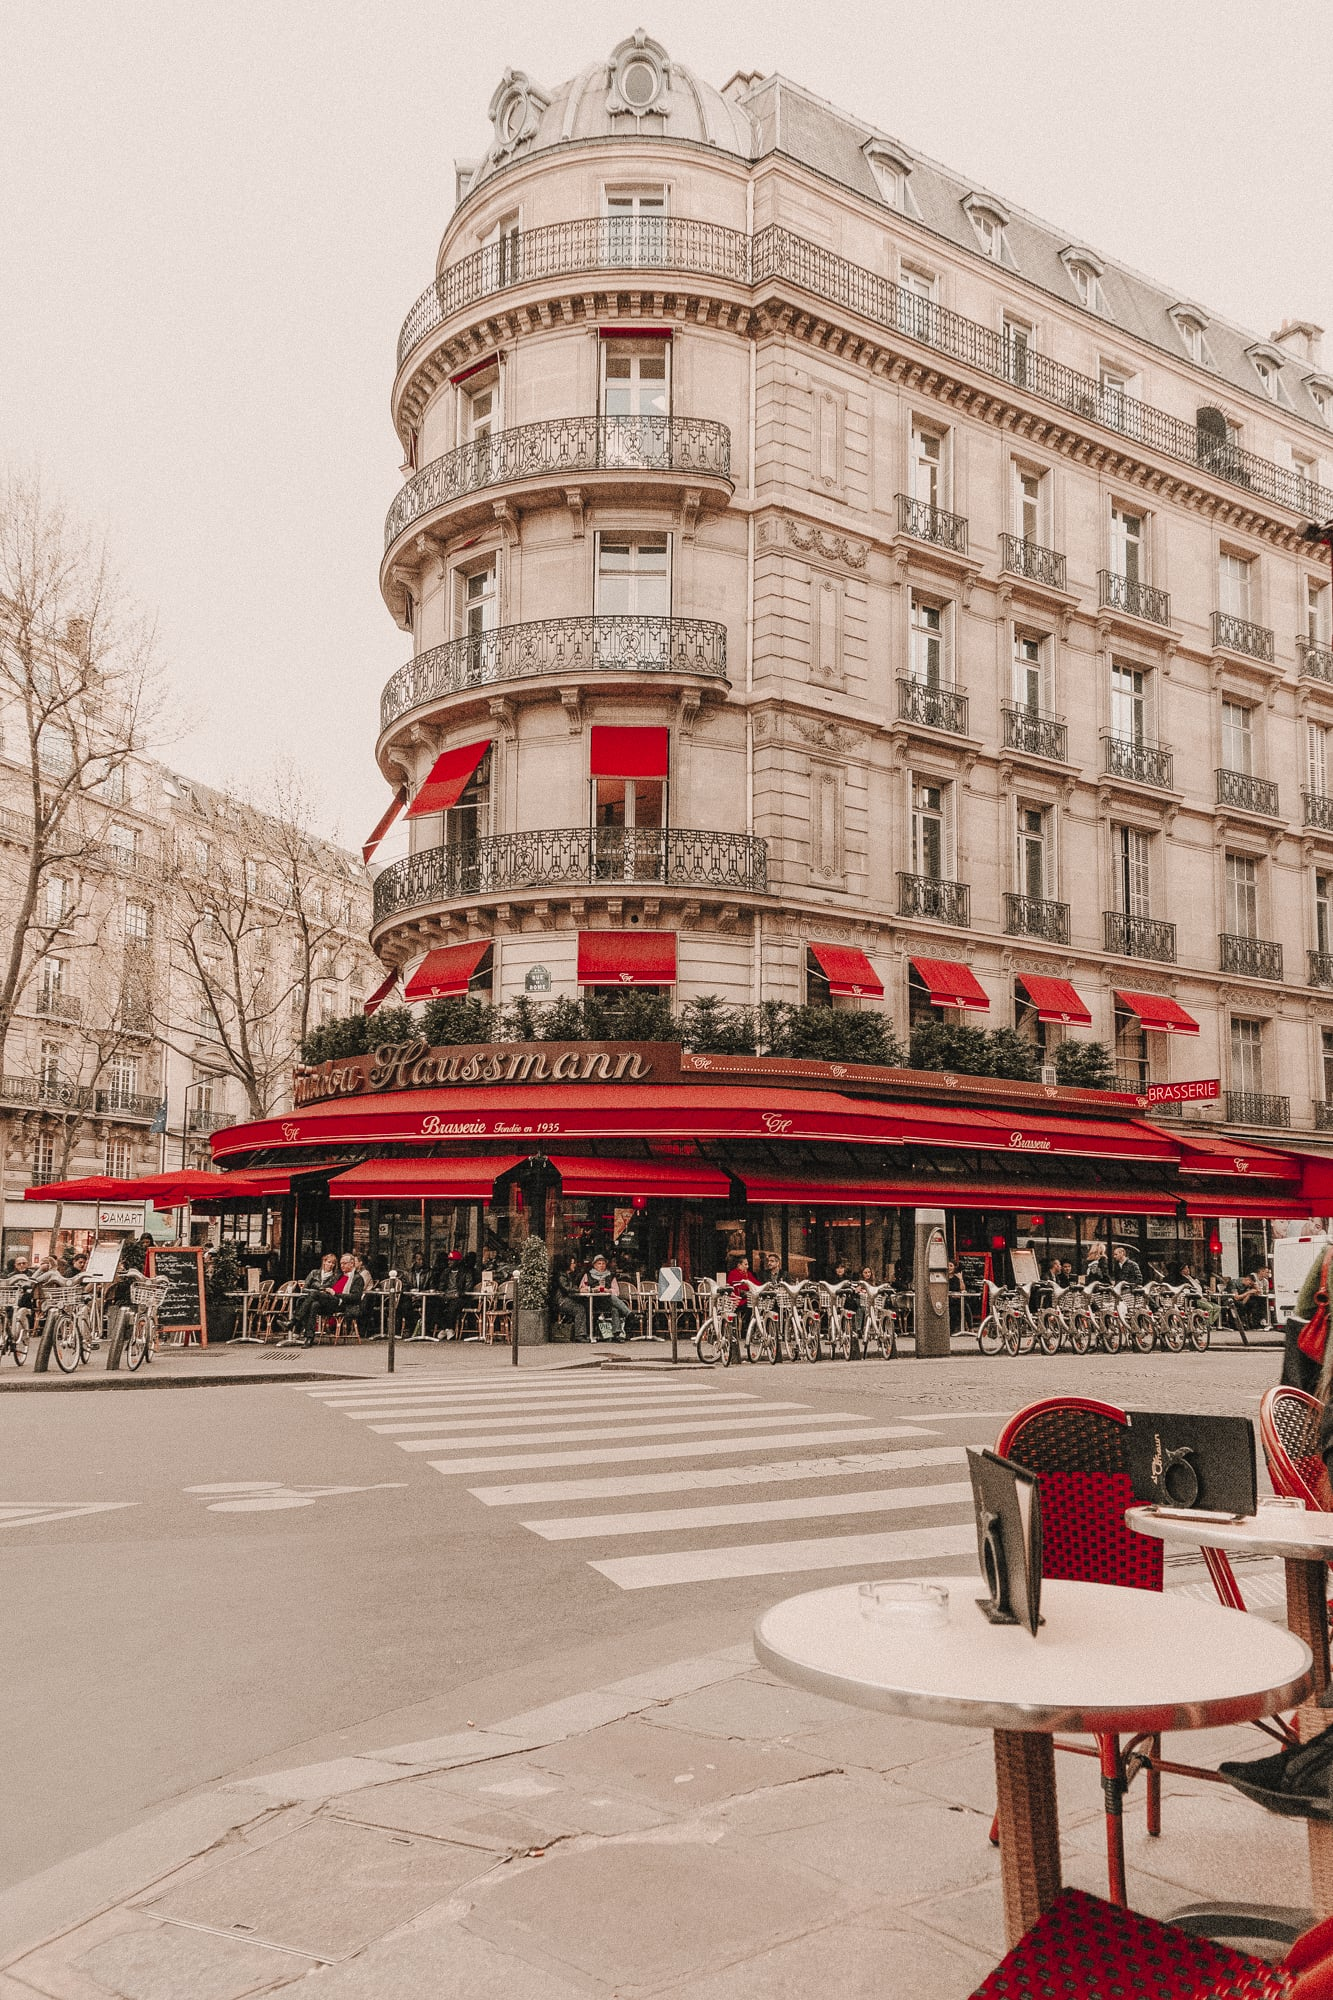 Parisian cafe with red awning